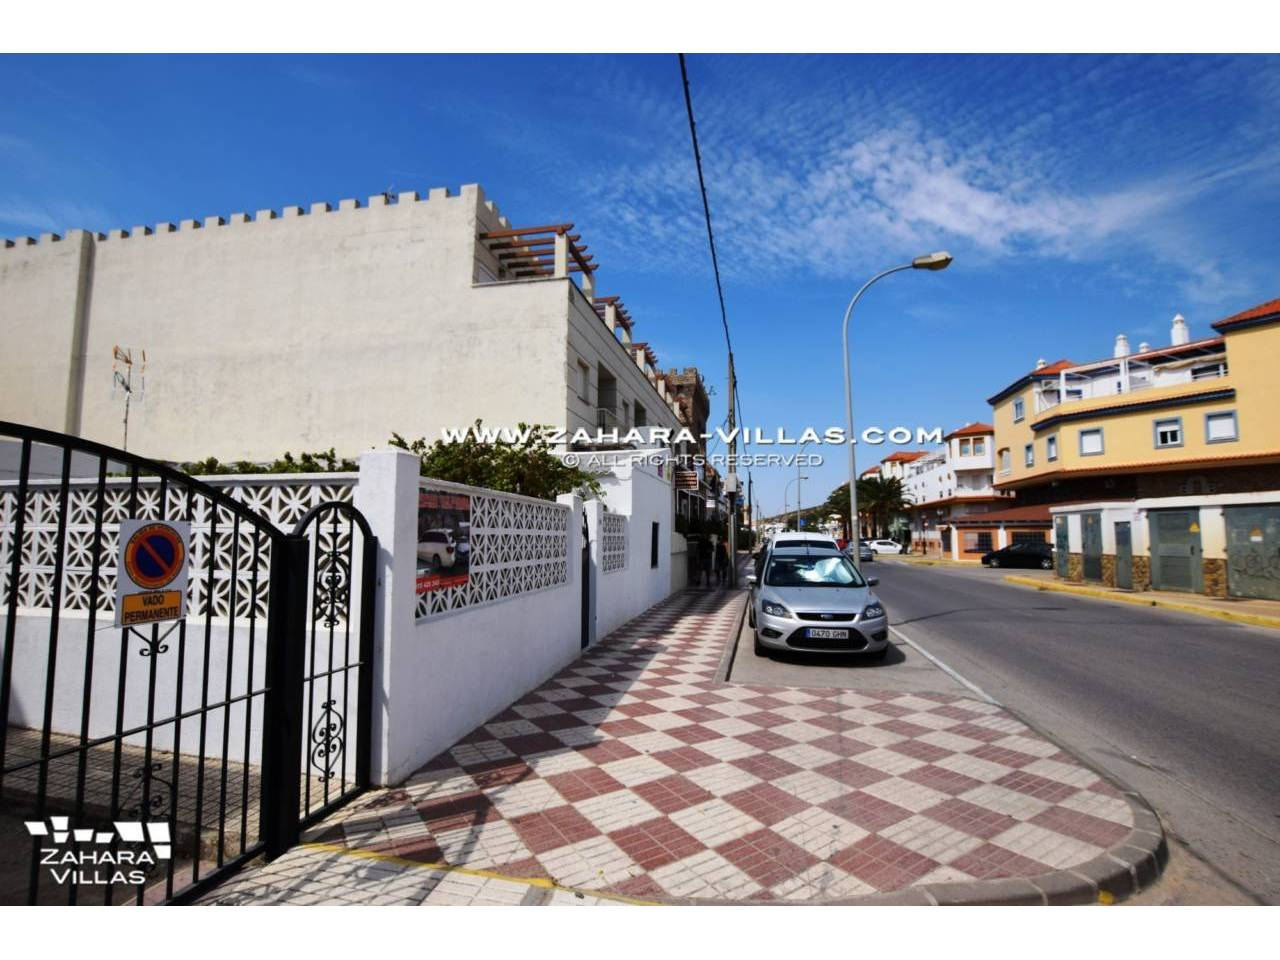 Imagen 3 de House in Avda. Del Pradillo for sale in the town of Zahara de los Atunes